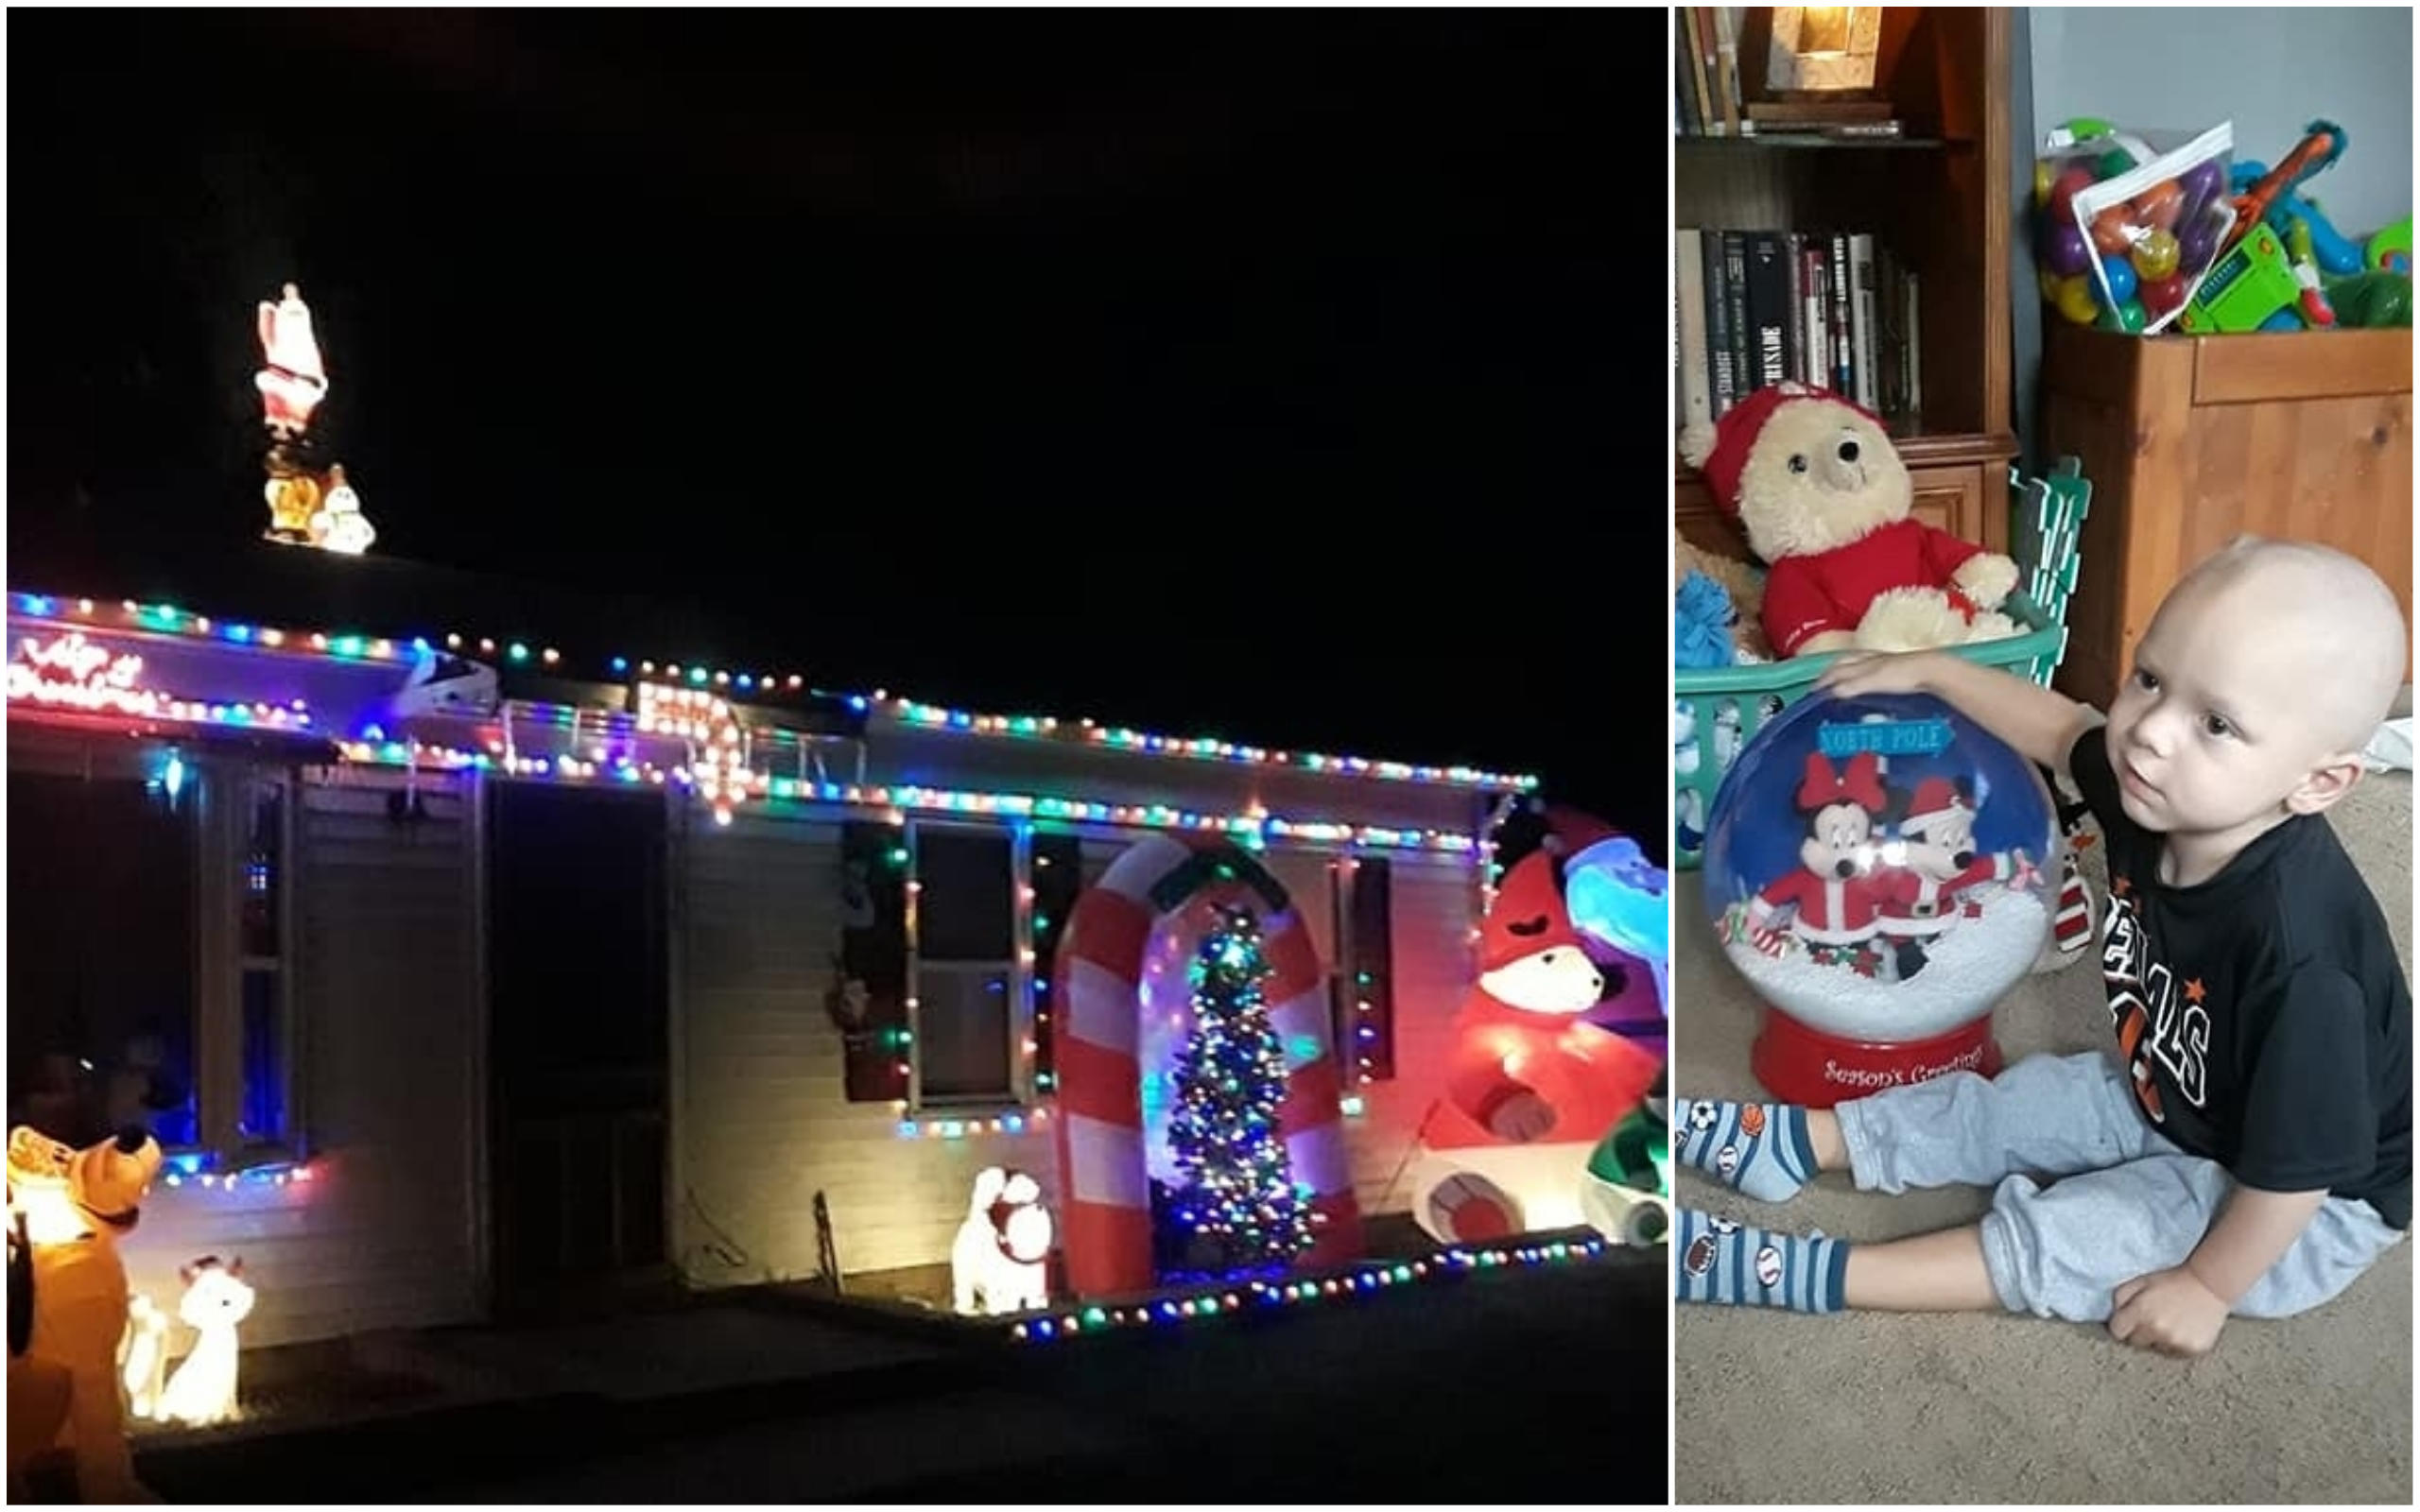 Neighborhood Celebrates Christmas Early For 2 Year Old Boy Dying Of Brain Cancer